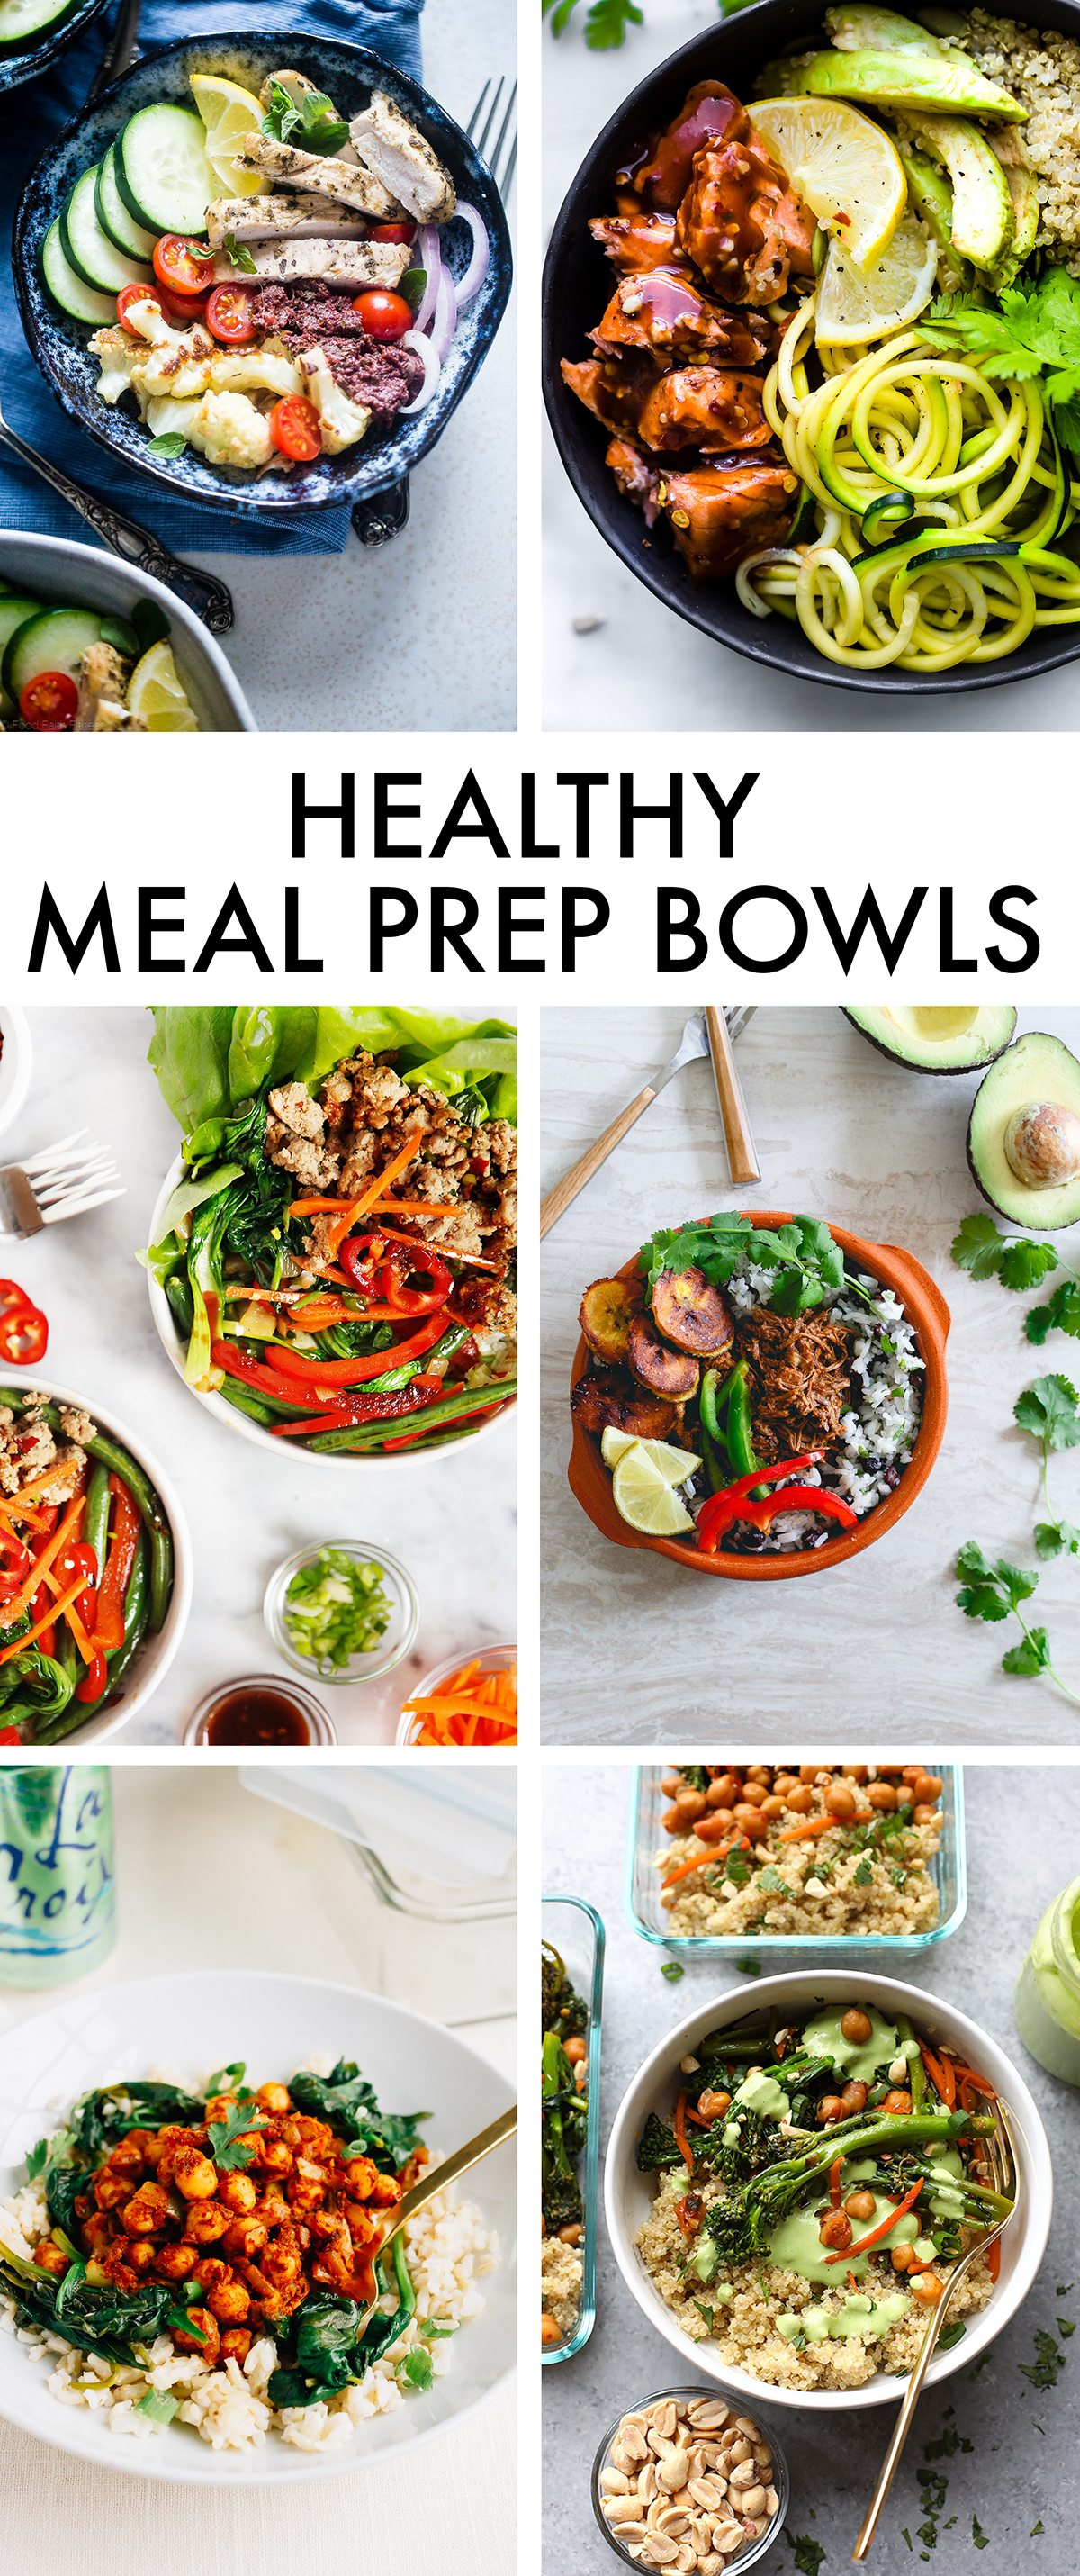 Healthy Meal Prep Bowls